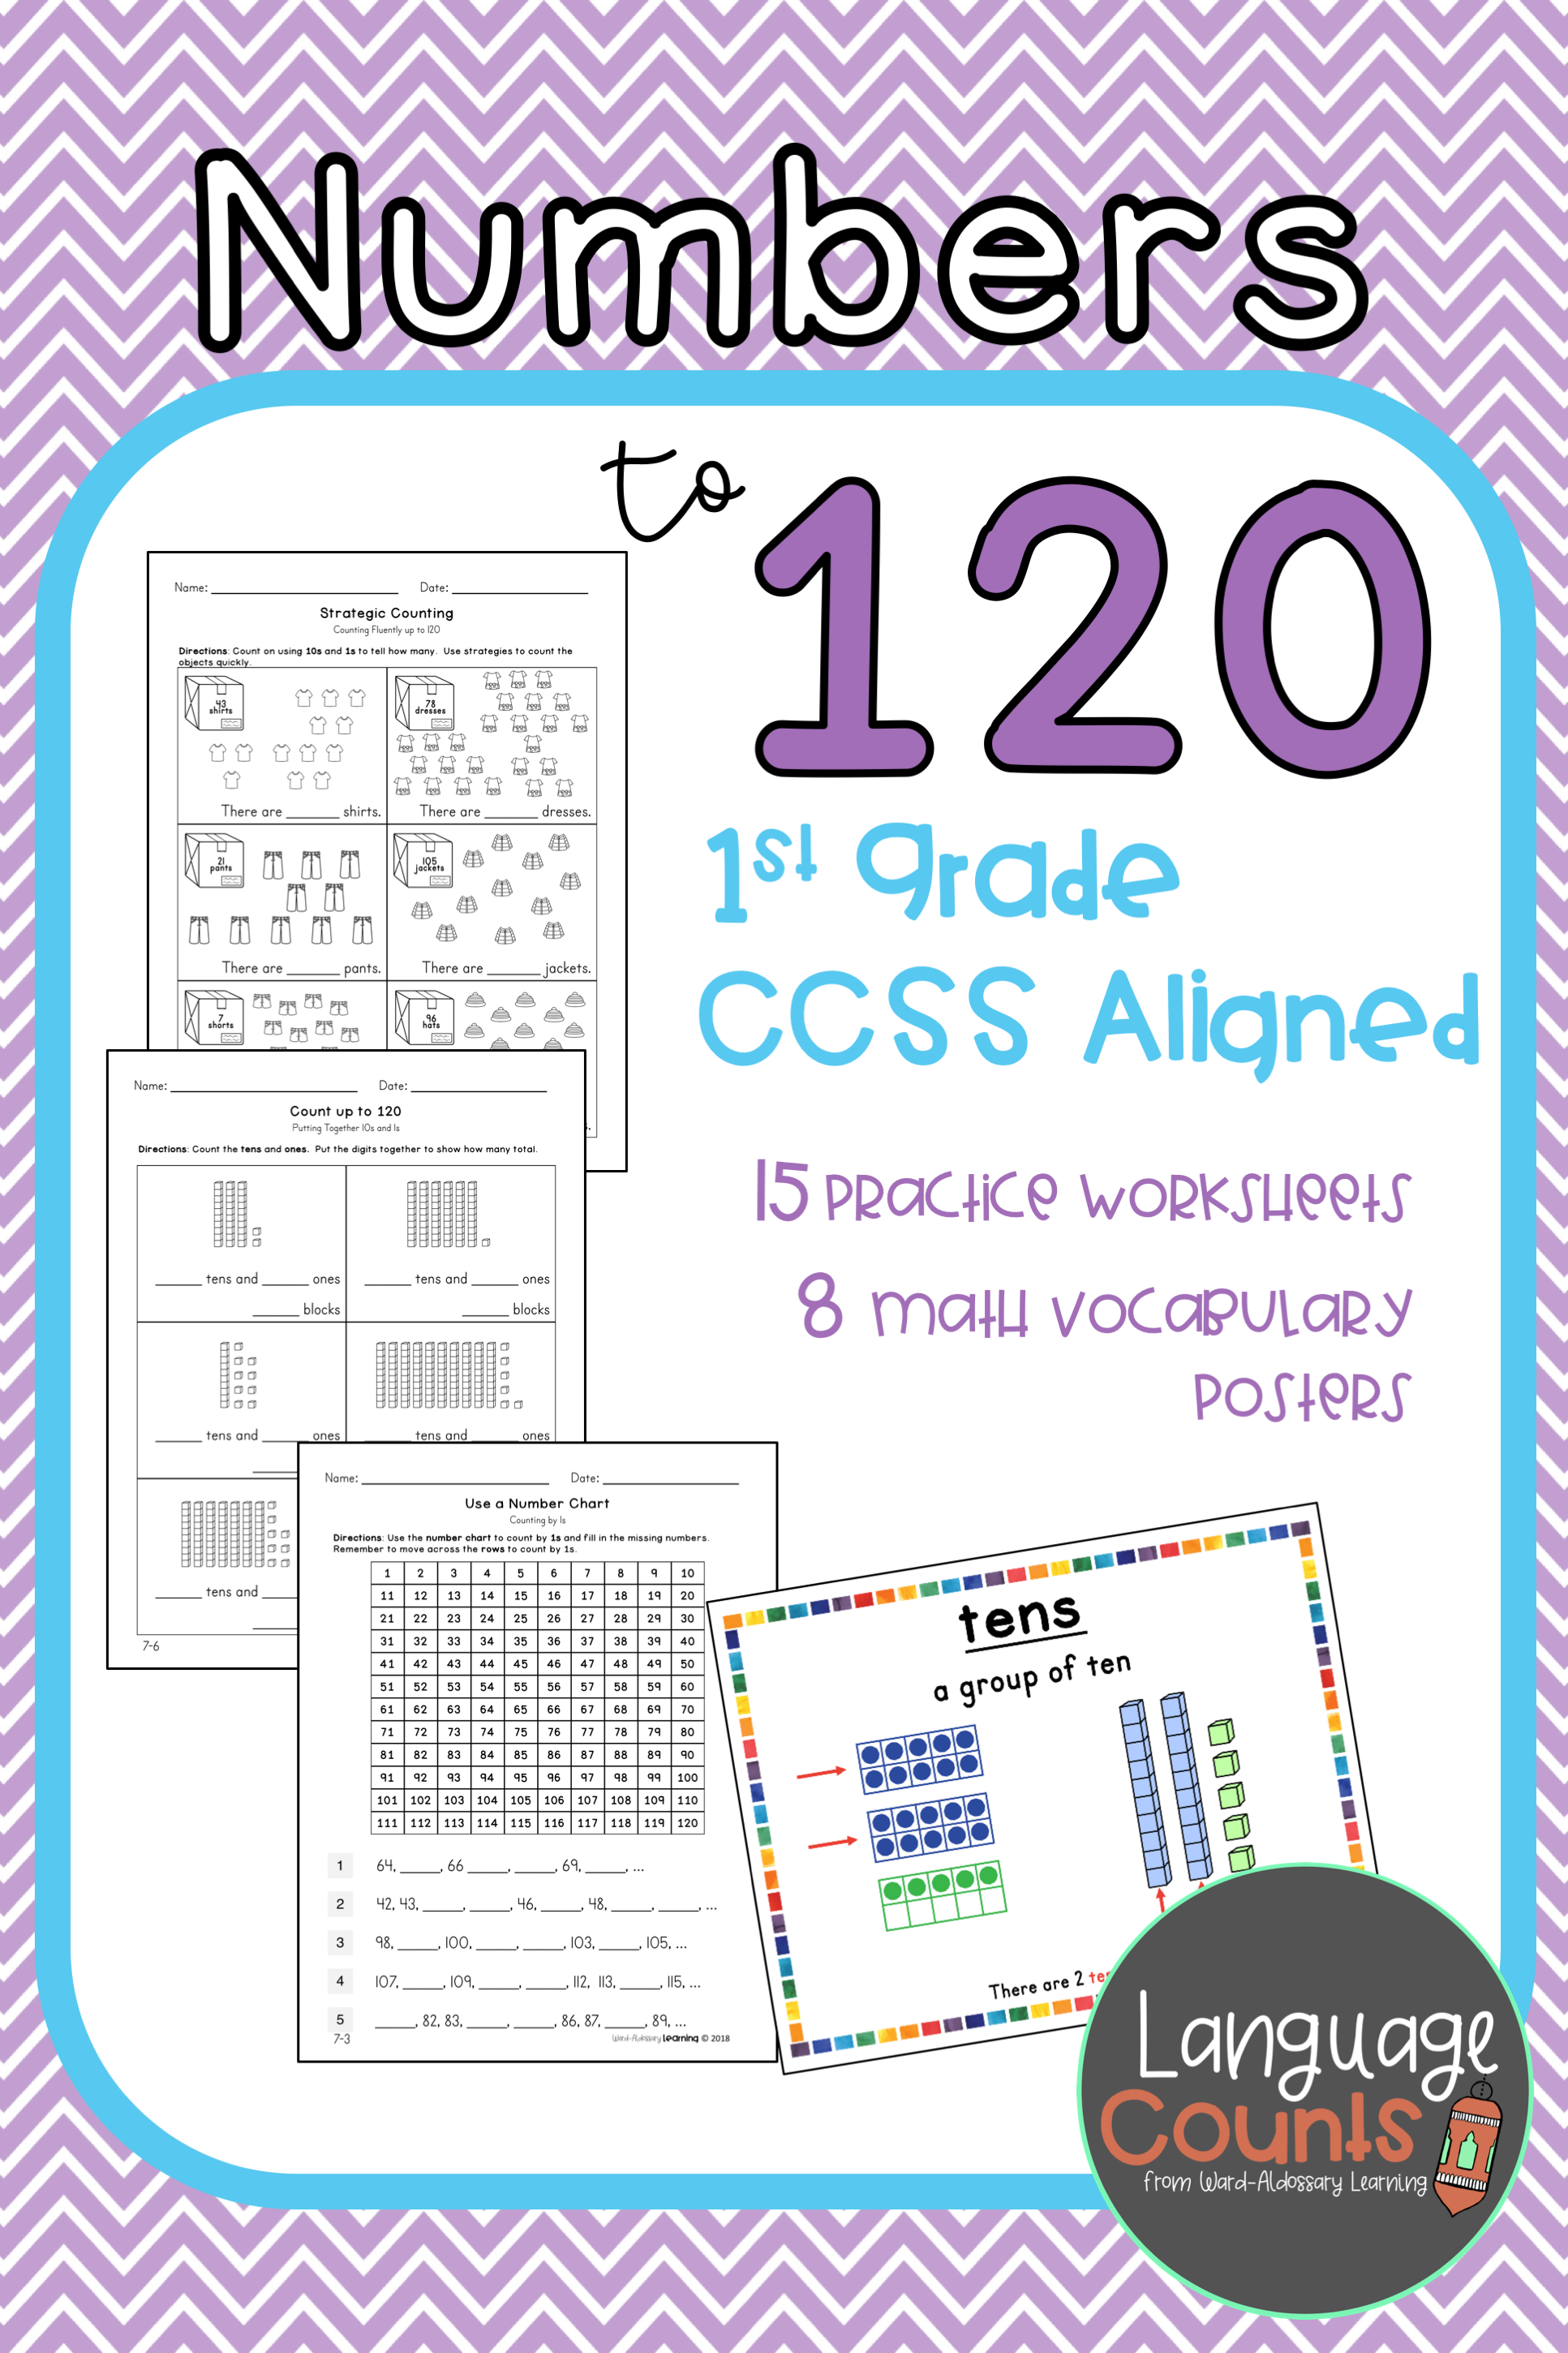 Extend The Counting Sequence To 120 Students Gain Number Sense And Skills In Counting By 1s O Envision Math Kindergarten Envision Math Elementary School Math [ 2900 x 1933 Pixel ]